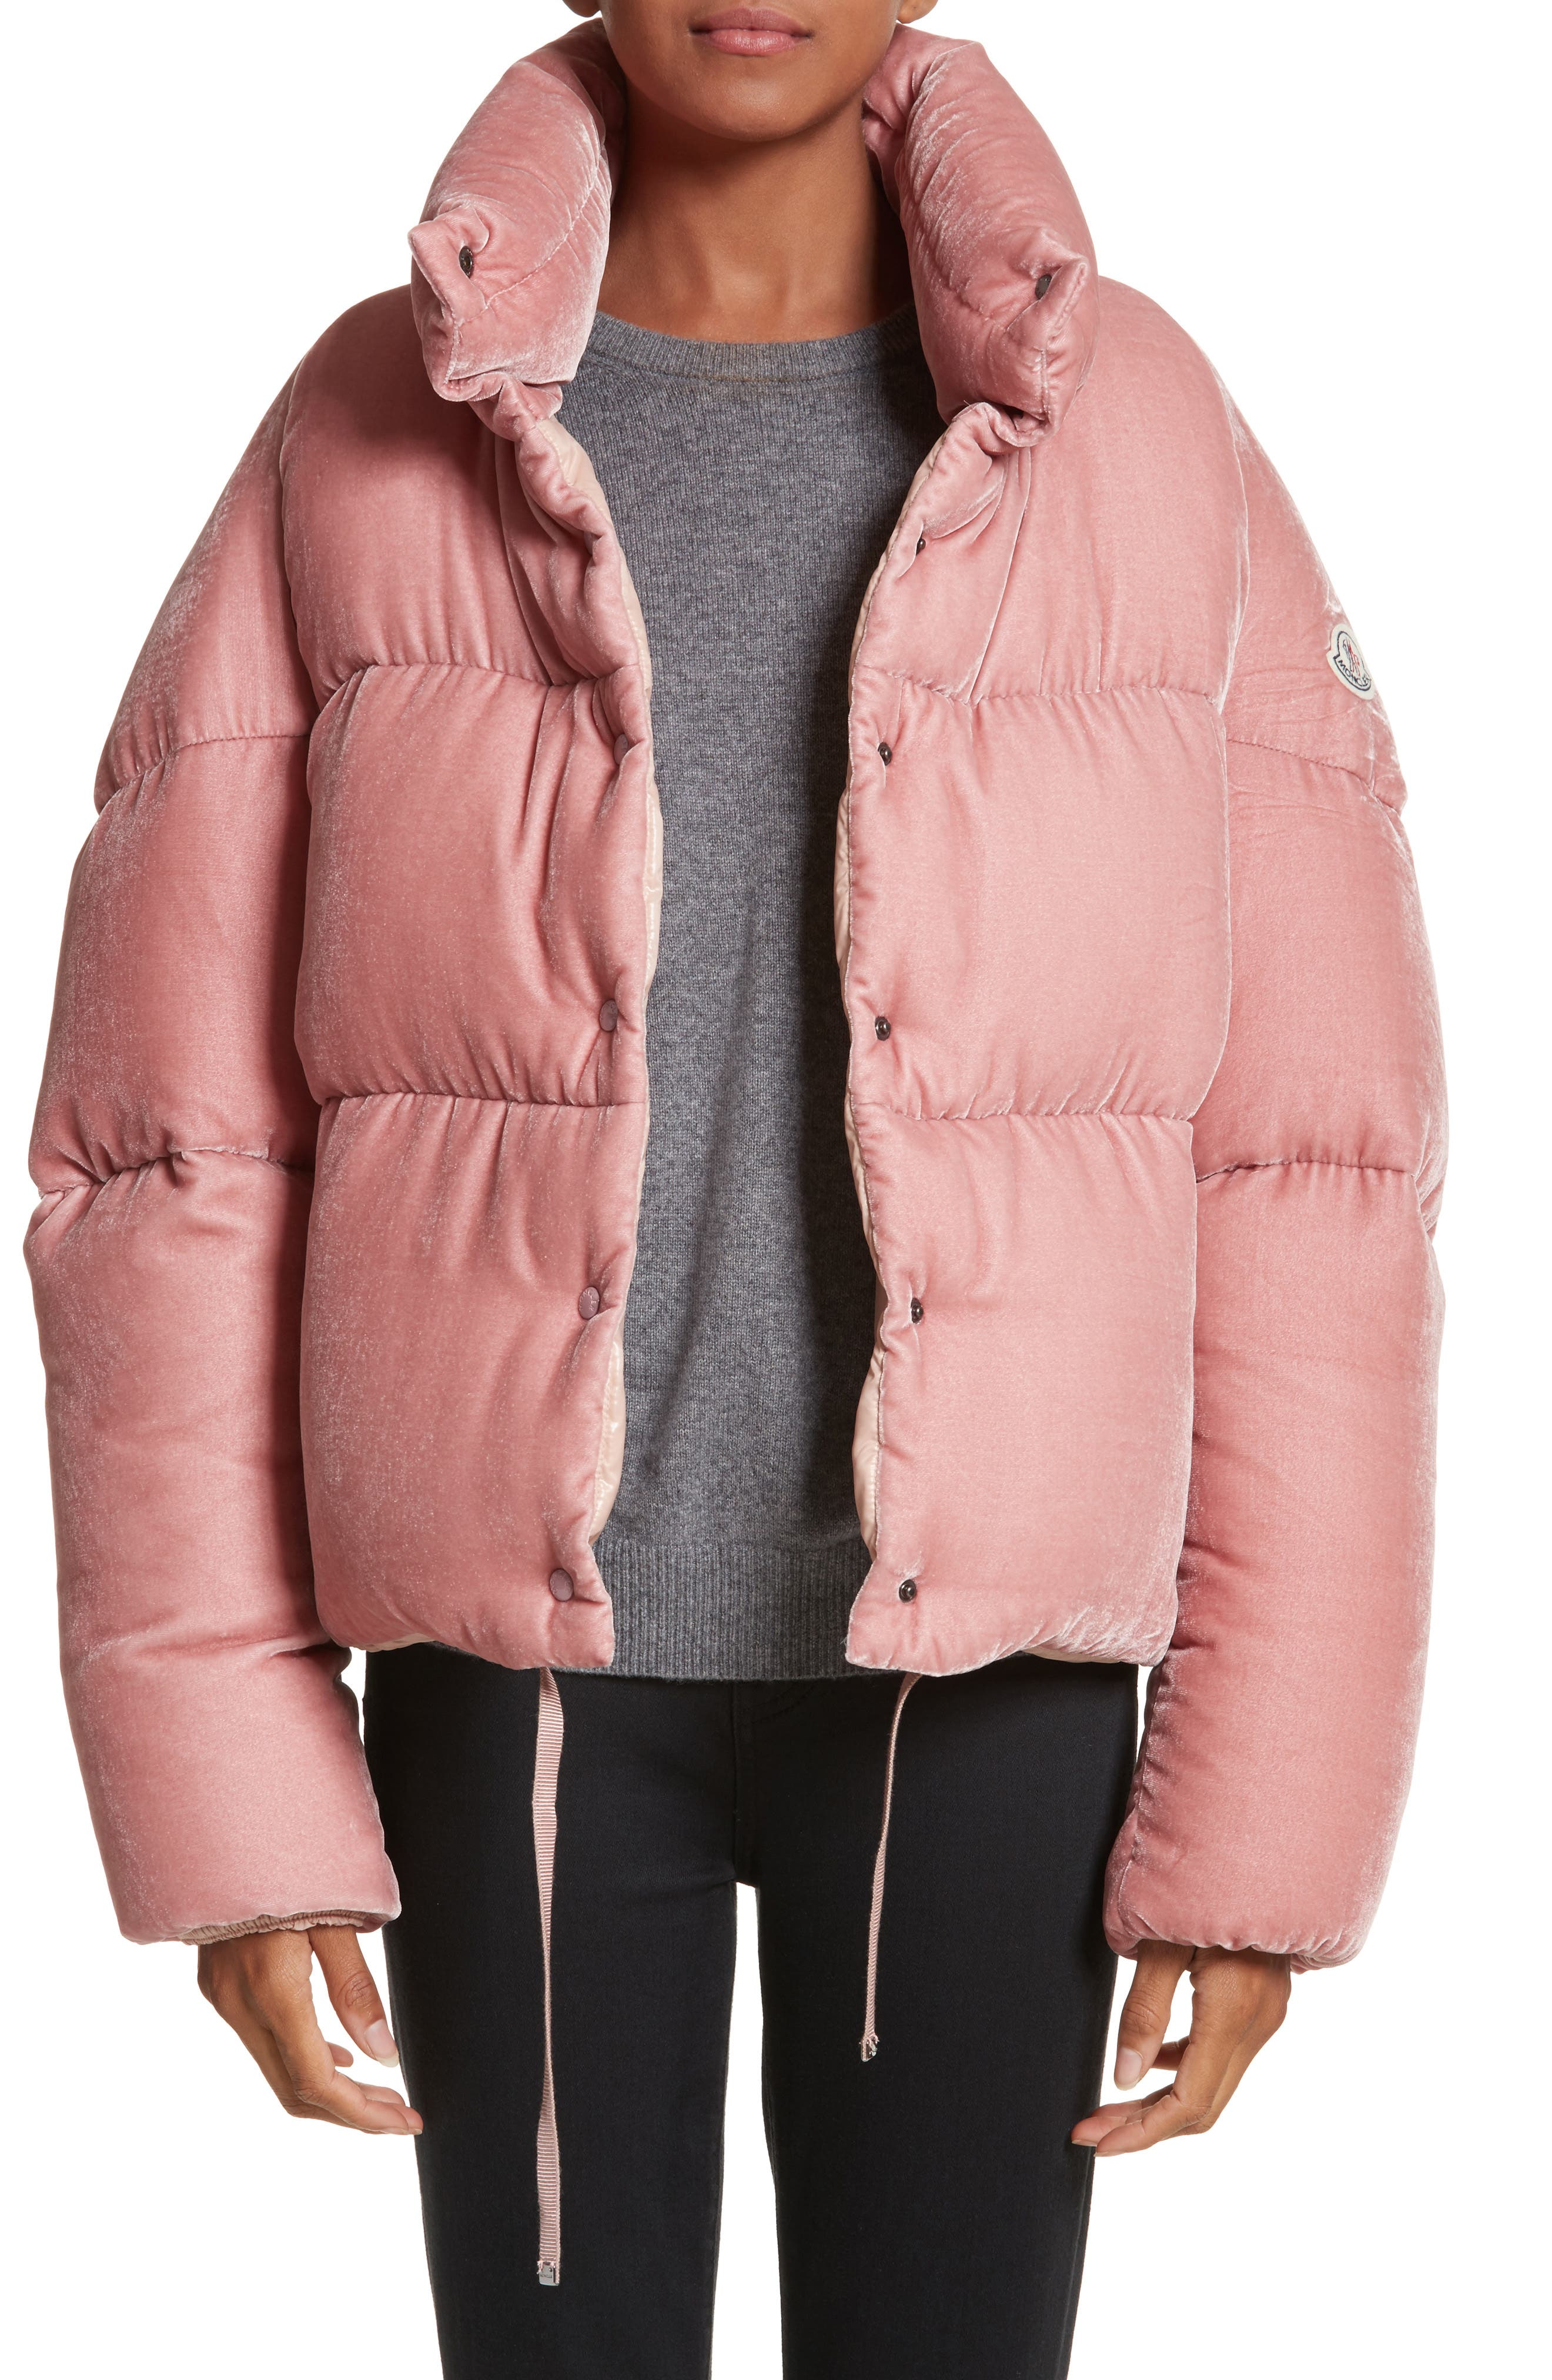 Cercis Velvet Quilted Down Puffer Coat,                             Main thumbnail 1, color,                             Pink